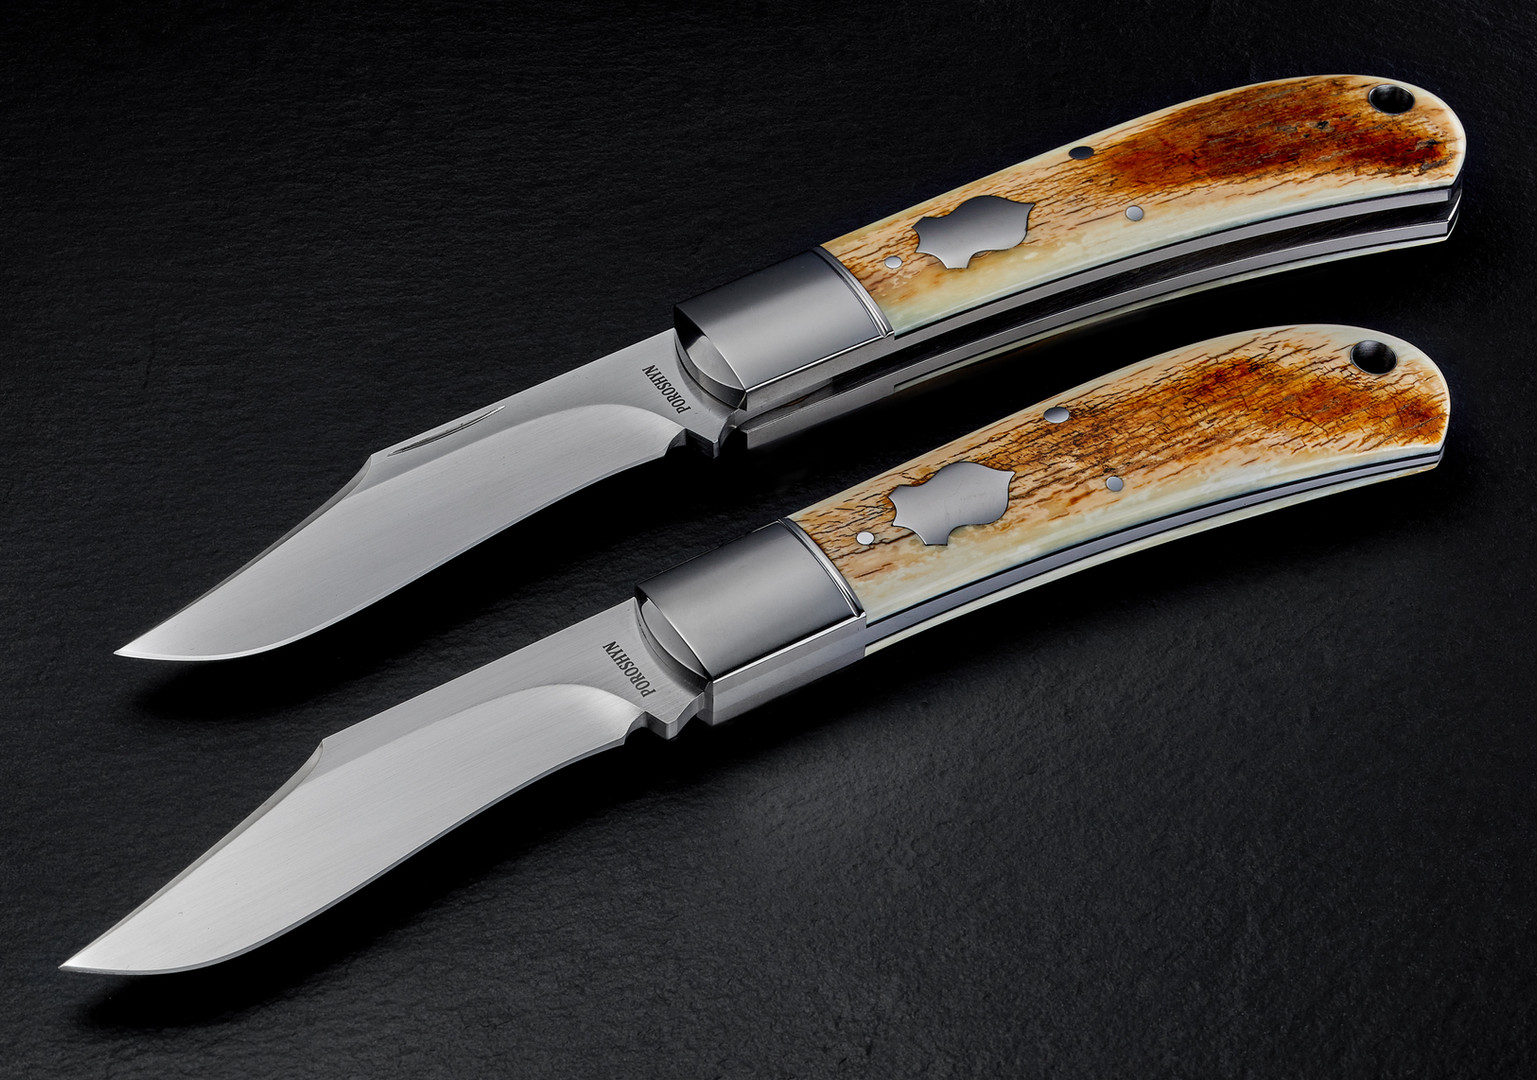 Knives with mammoth handle. Not Retouched.